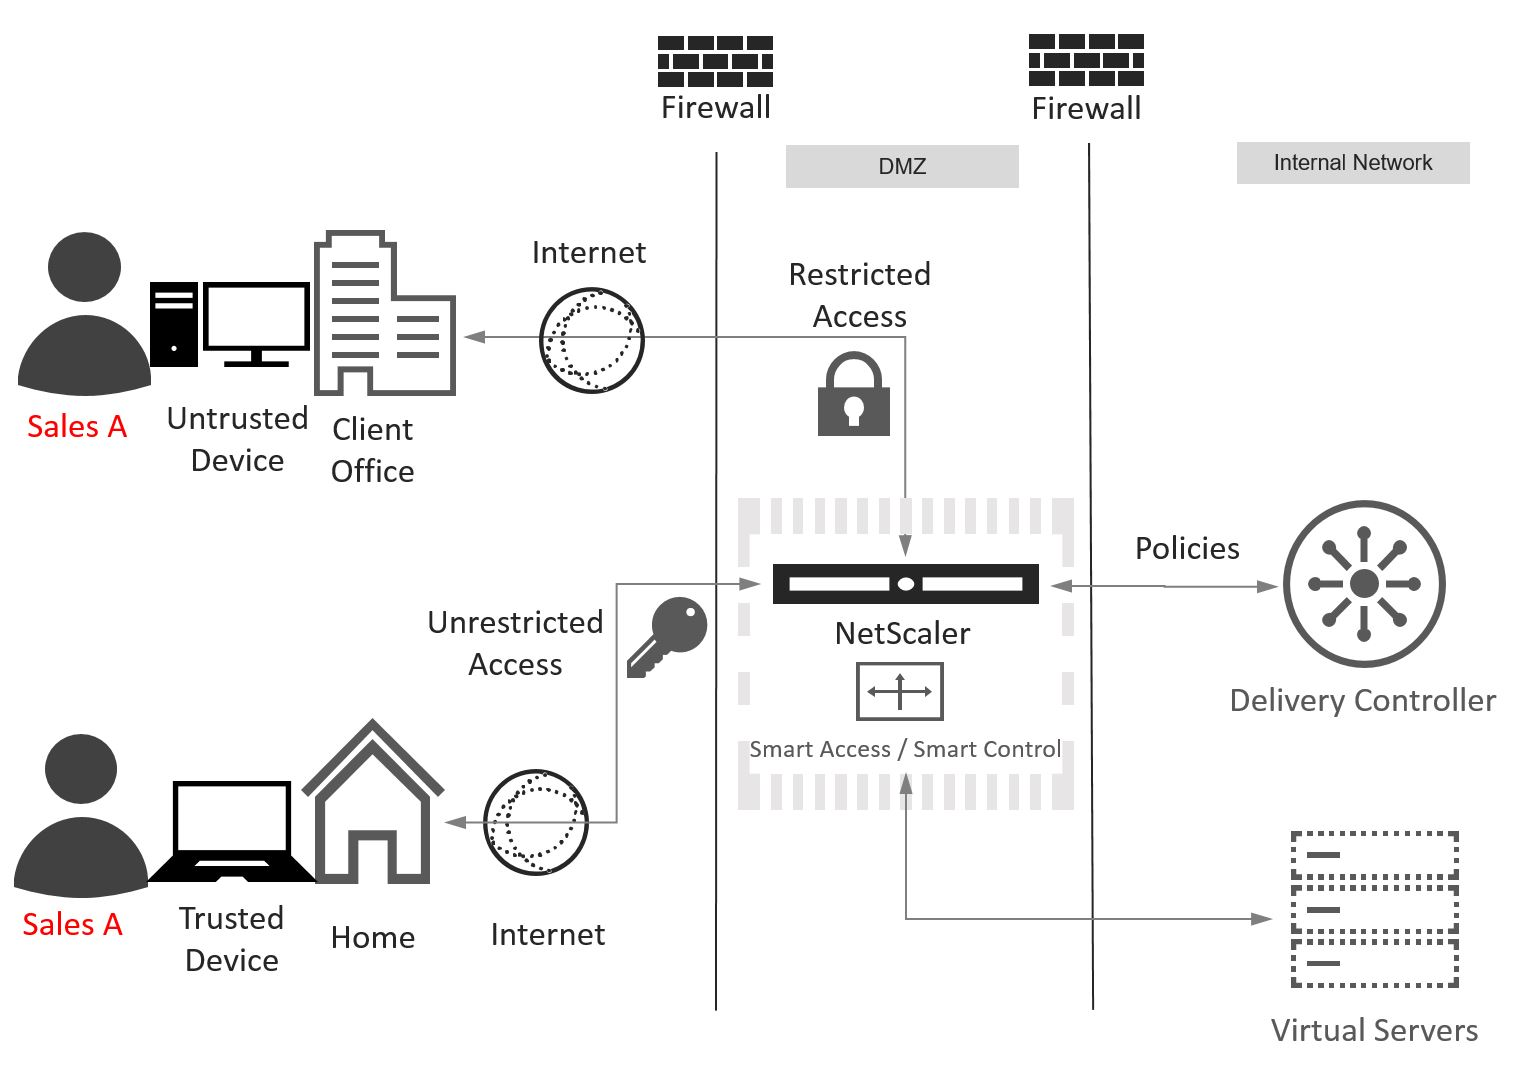 SmartAccess - Diagram 2 - User accessing via different devices